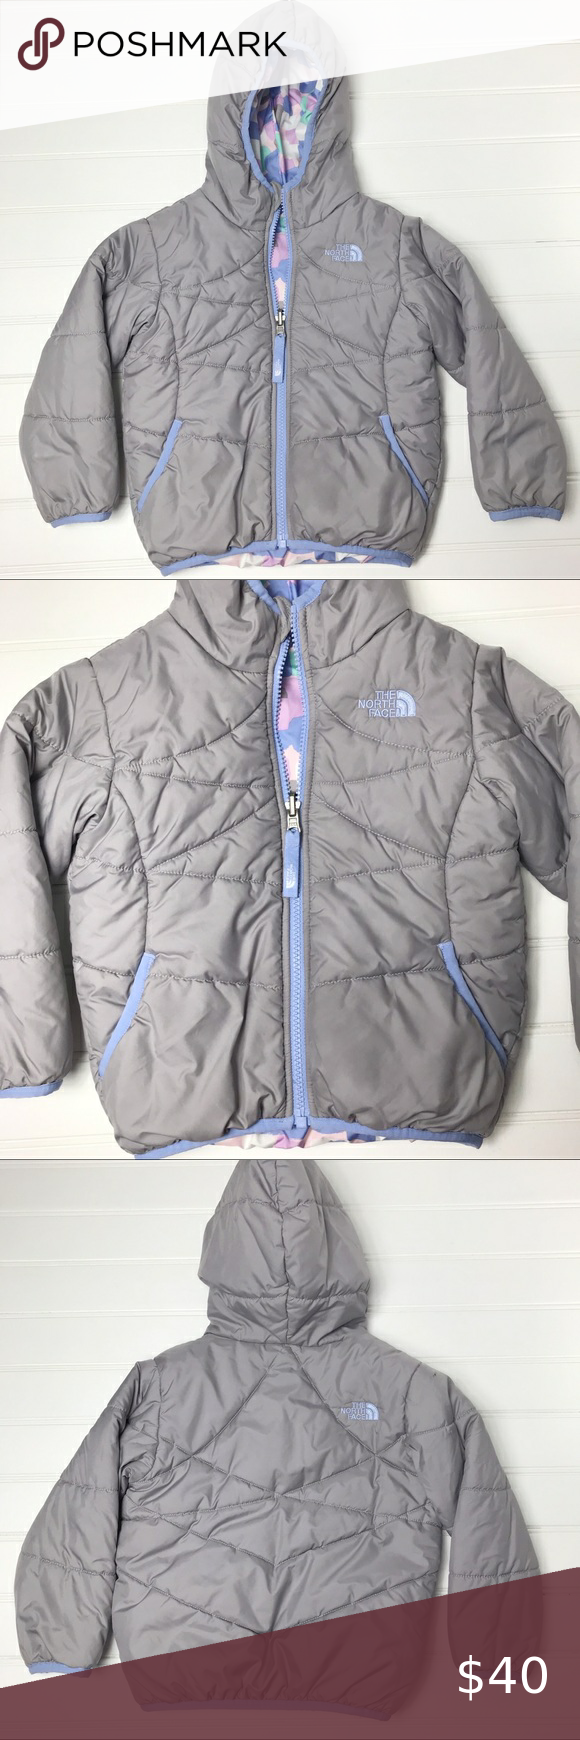 The North Face Toddler Puffer Jacket Size 3t The North Face North Face Jacket Puffer Jackets [ 1740 x 580 Pixel ]